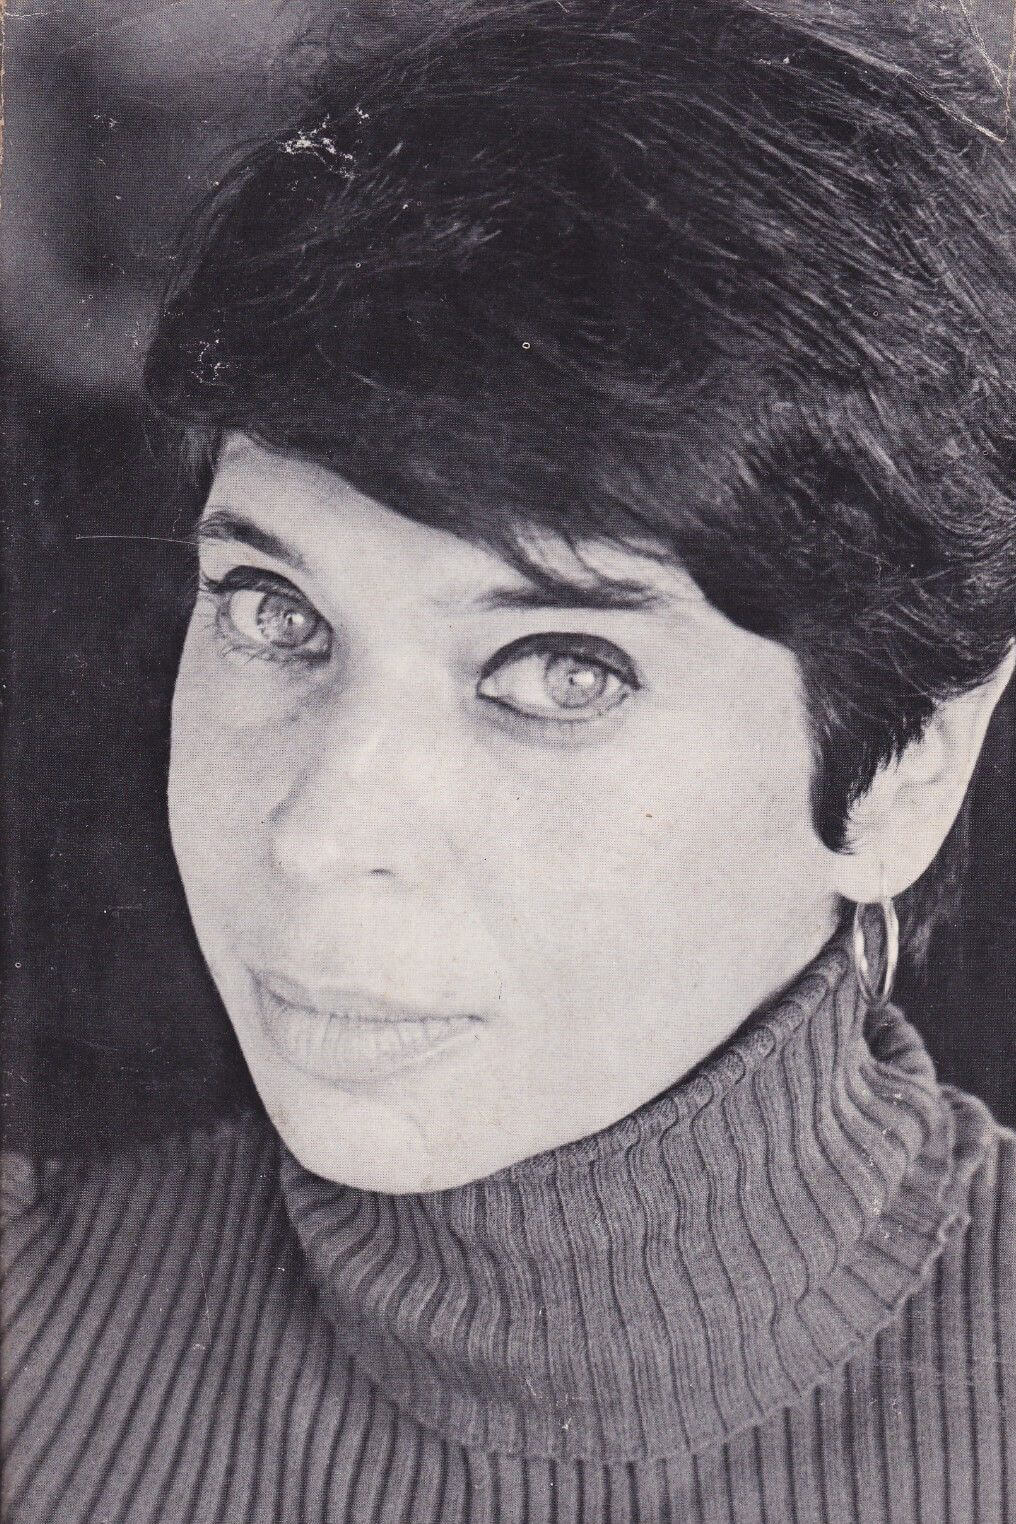 Portrait of Vivian Gornick on the back jacket of her cult <em>The Romance of American Communism</em> (1977), which is being reissued by Verso this year.